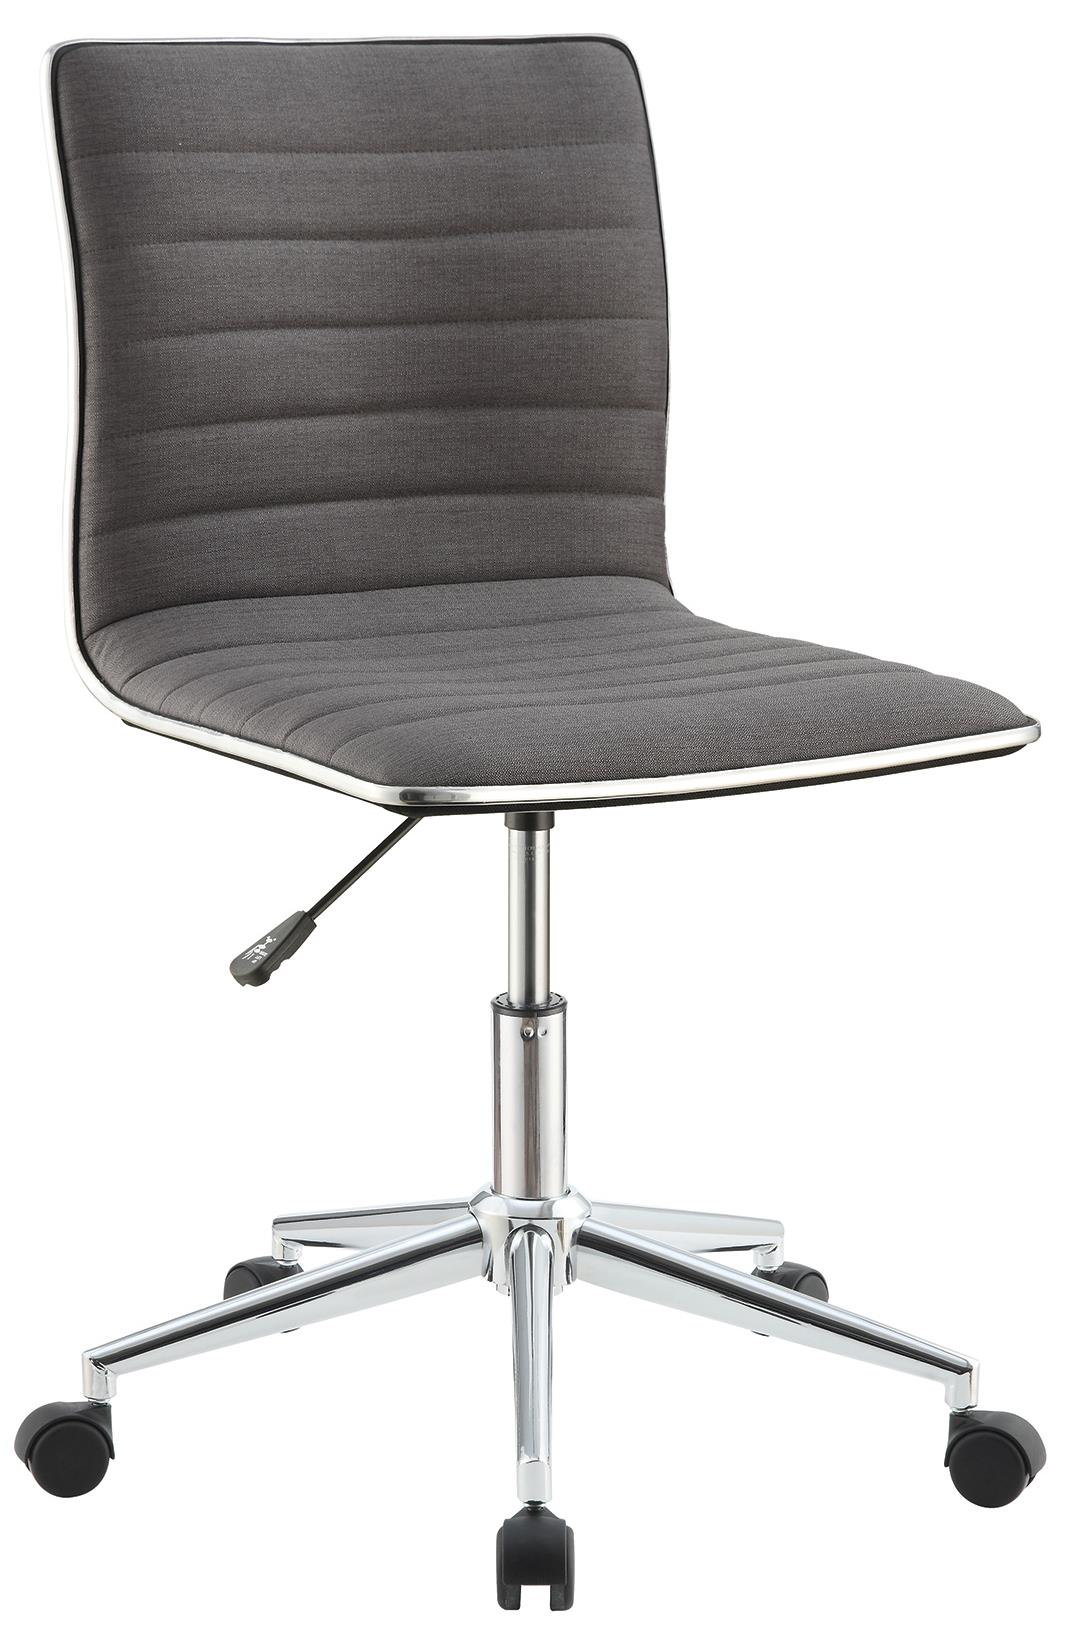 Coaster Office Chairs Office Chair - Item Number: 800727